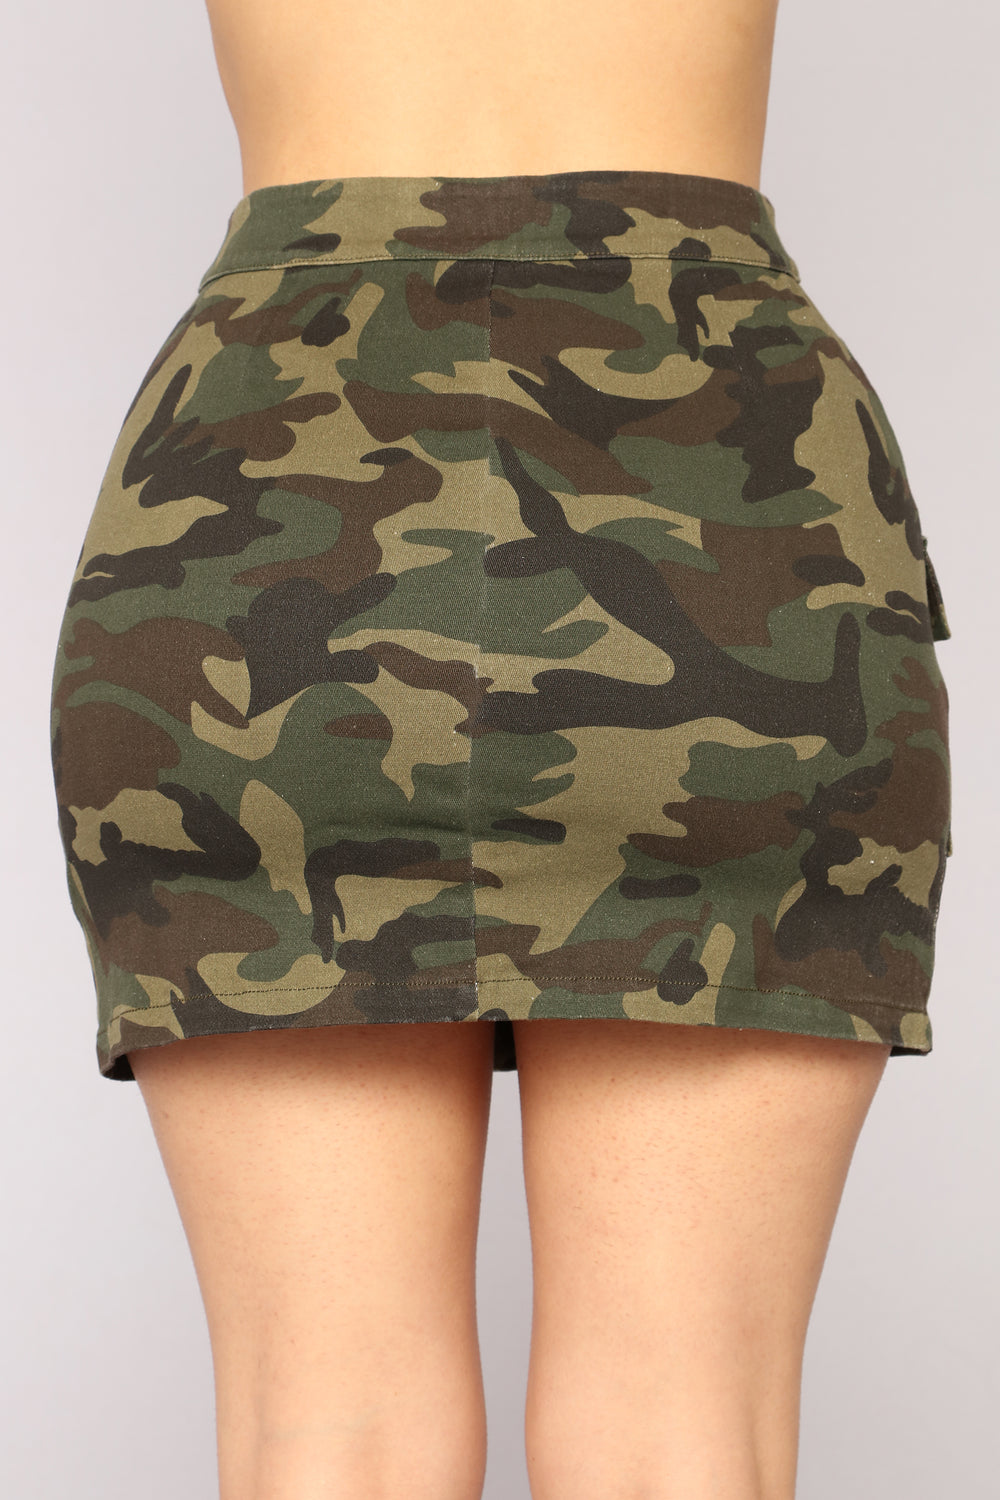 Next Adventure Mini Skirt - Camo